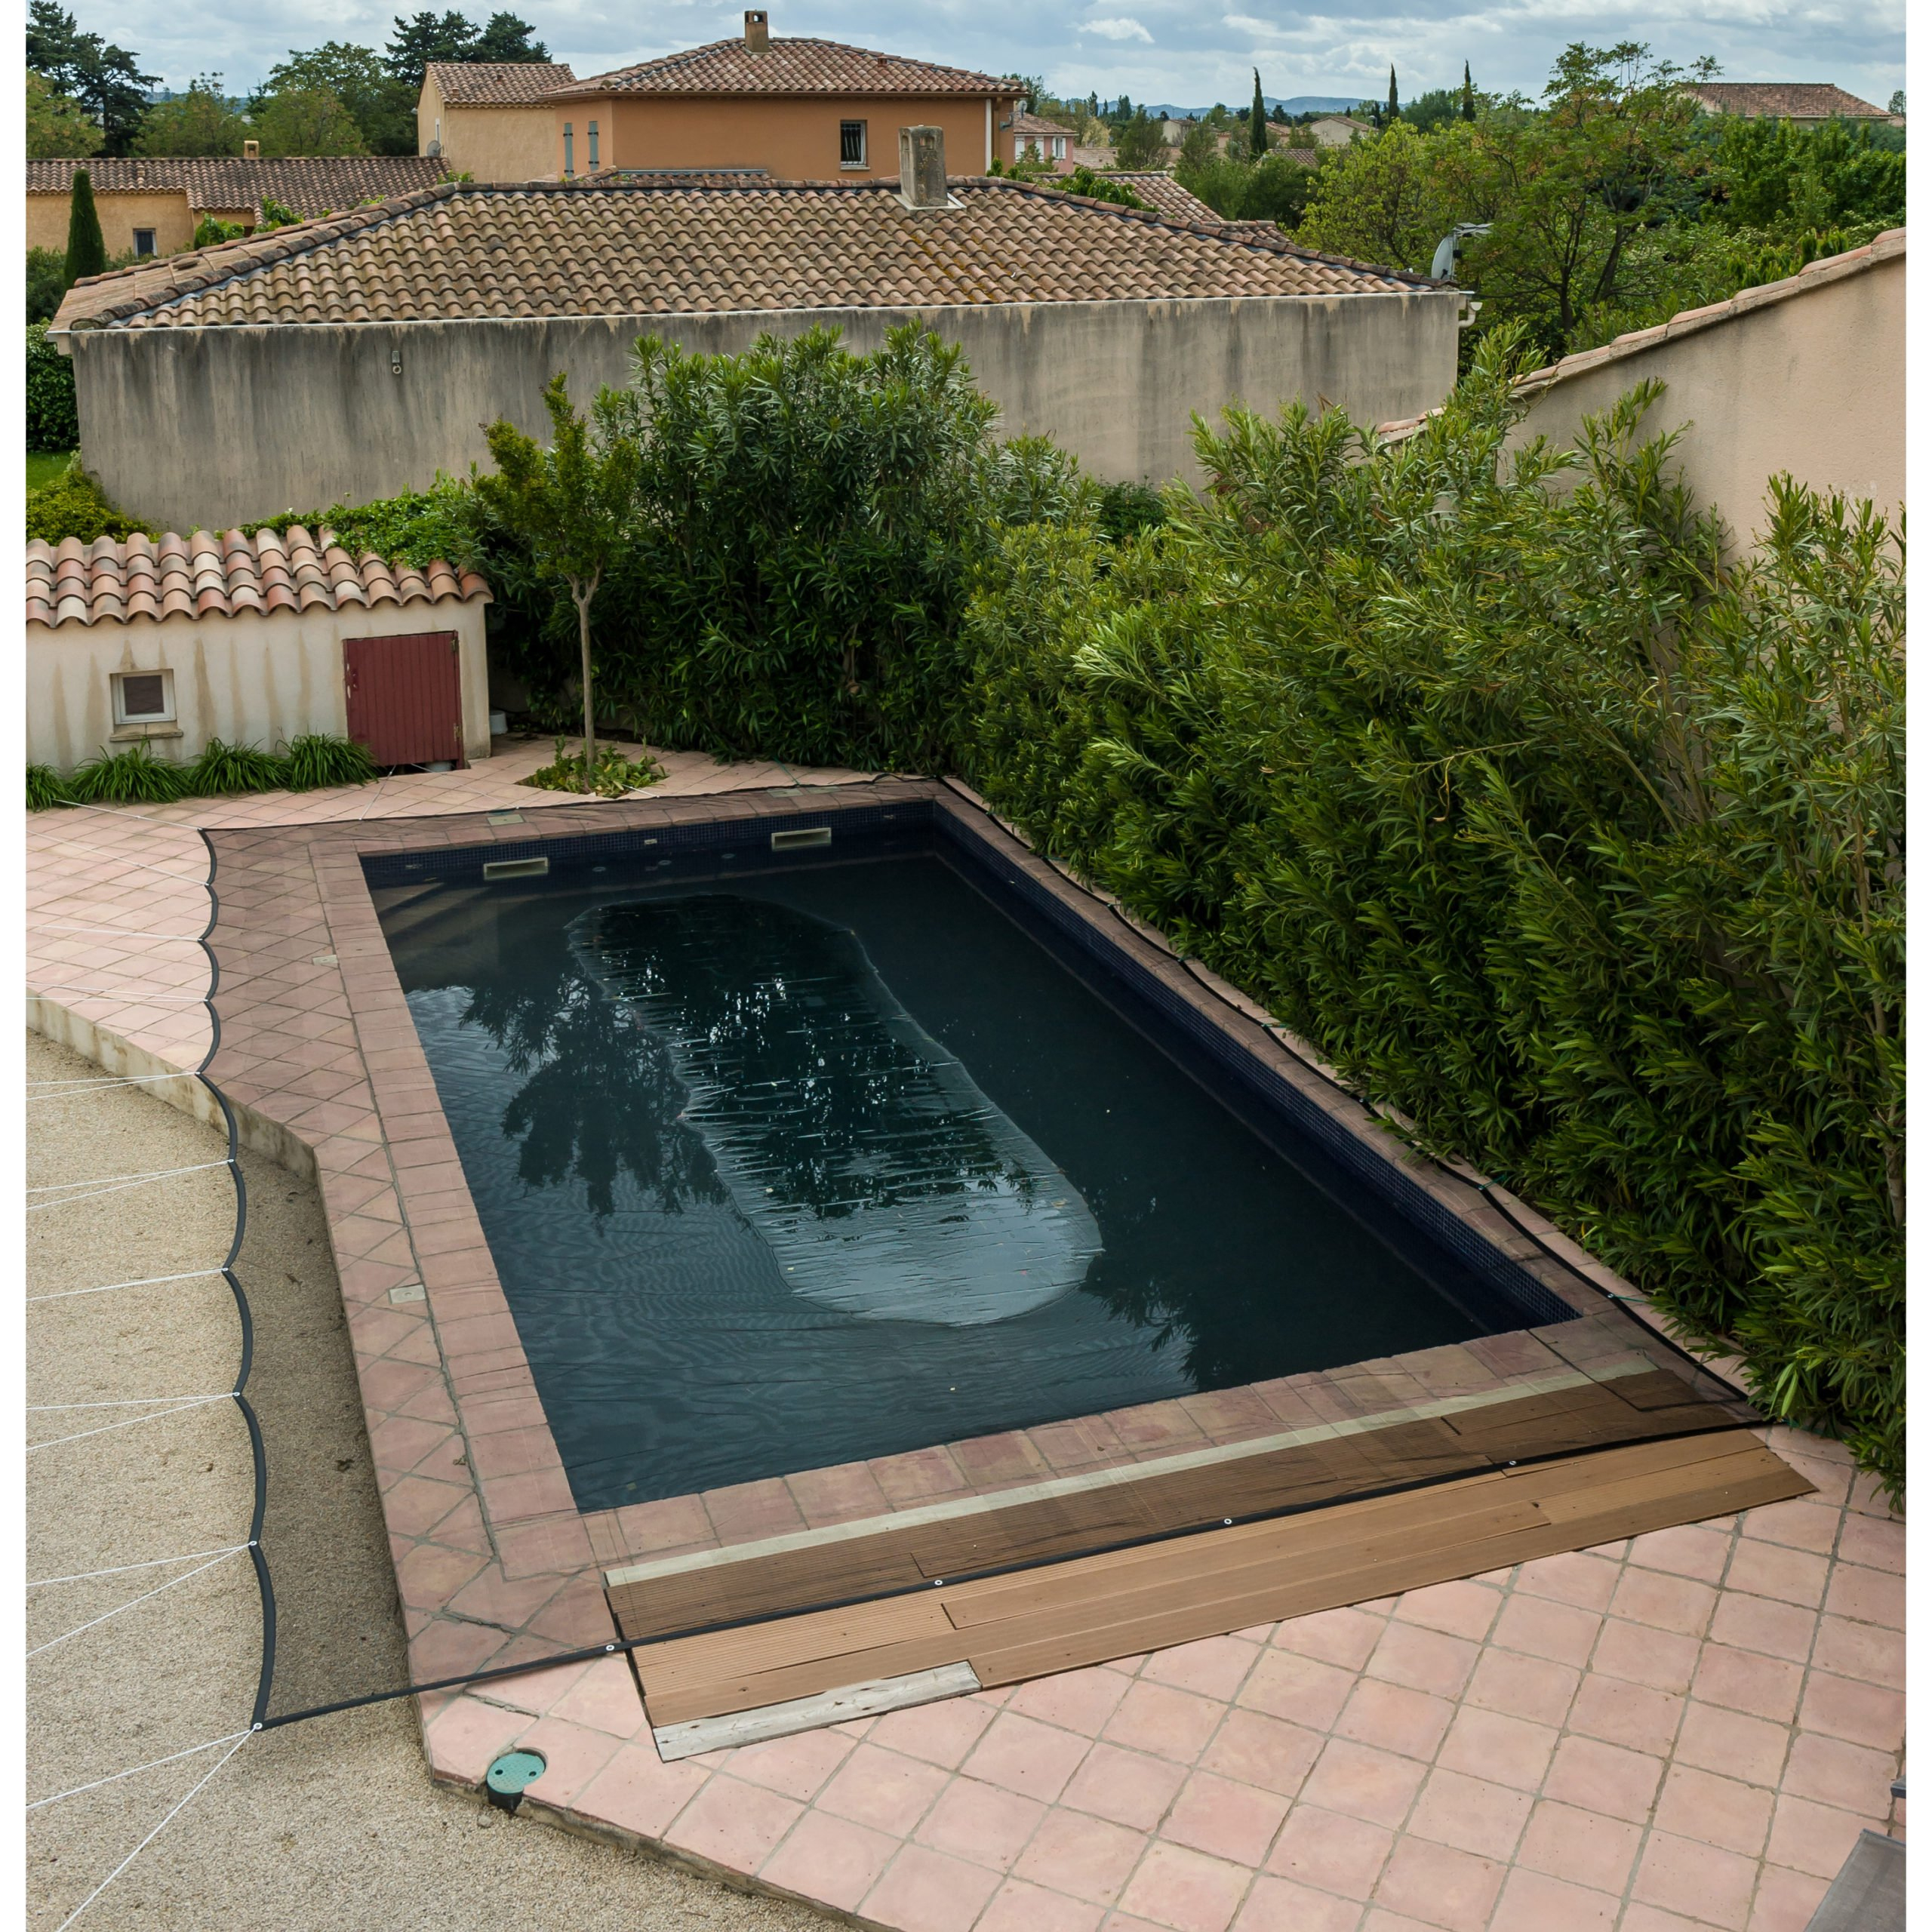 Filet De Protection Piscine 100G/m² Werkapro (5X9M) serapportantà Filet Protection Piscine